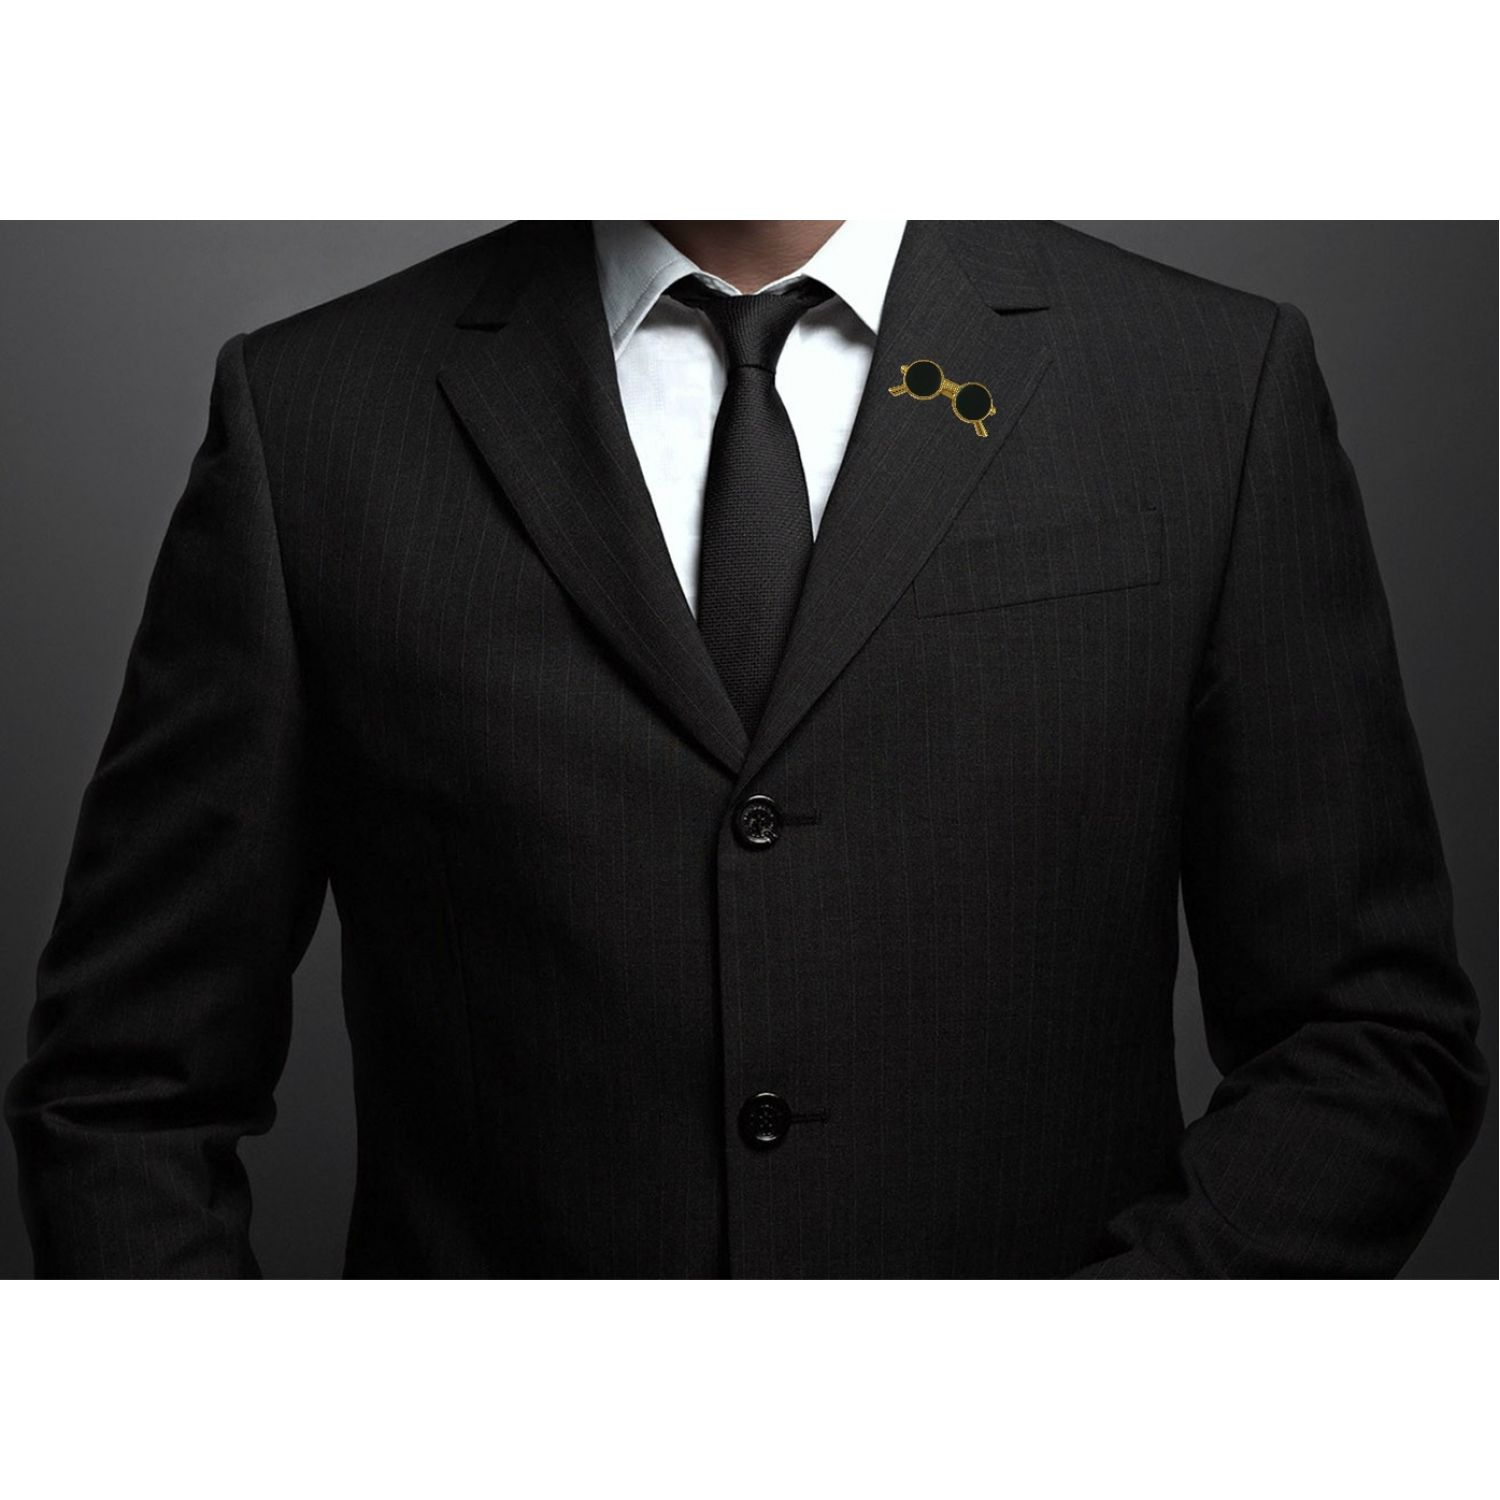 brooch burgundy dark shop neckwearshop flower suit produkt lapel pin online eu